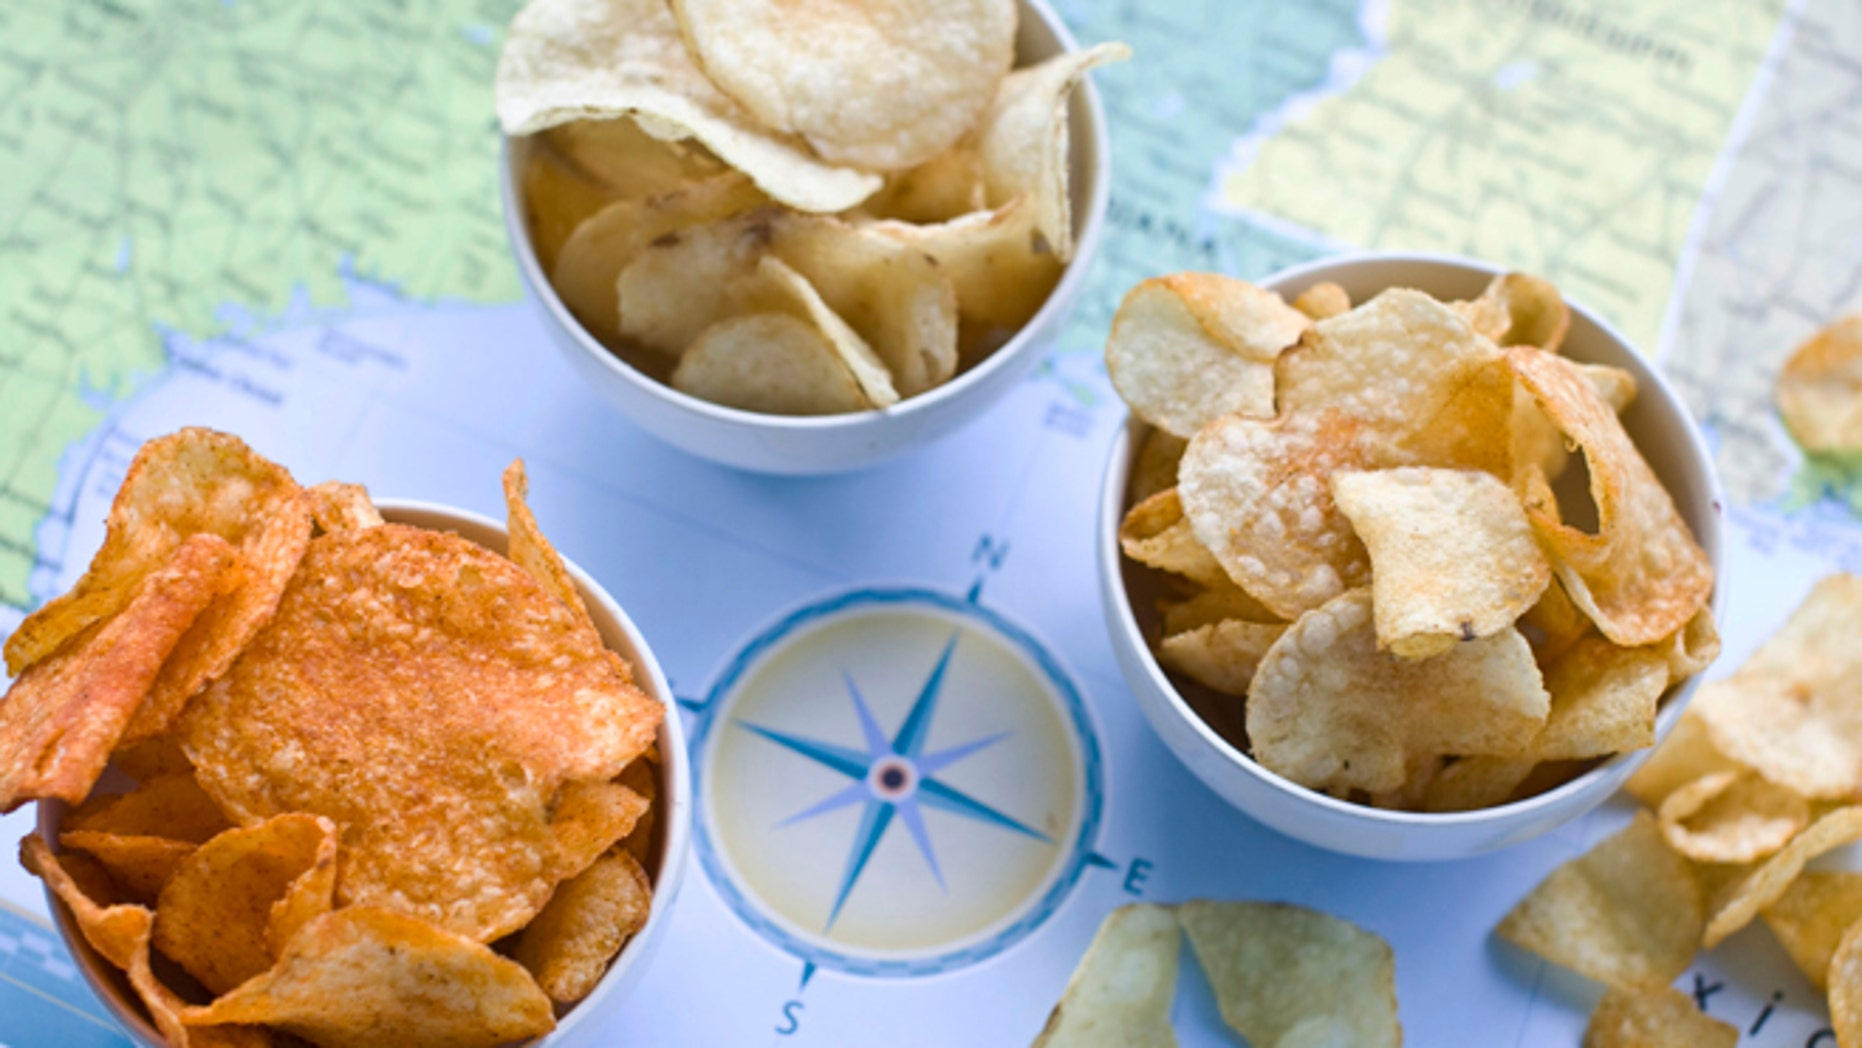 July 30, 2012: [from left] Poore Brothers Habanero, Route 11 Chips Chesapeake Crab, and Boulder Canyons Red Wine Vinegar, potato chips are shown in Concord, N.H.